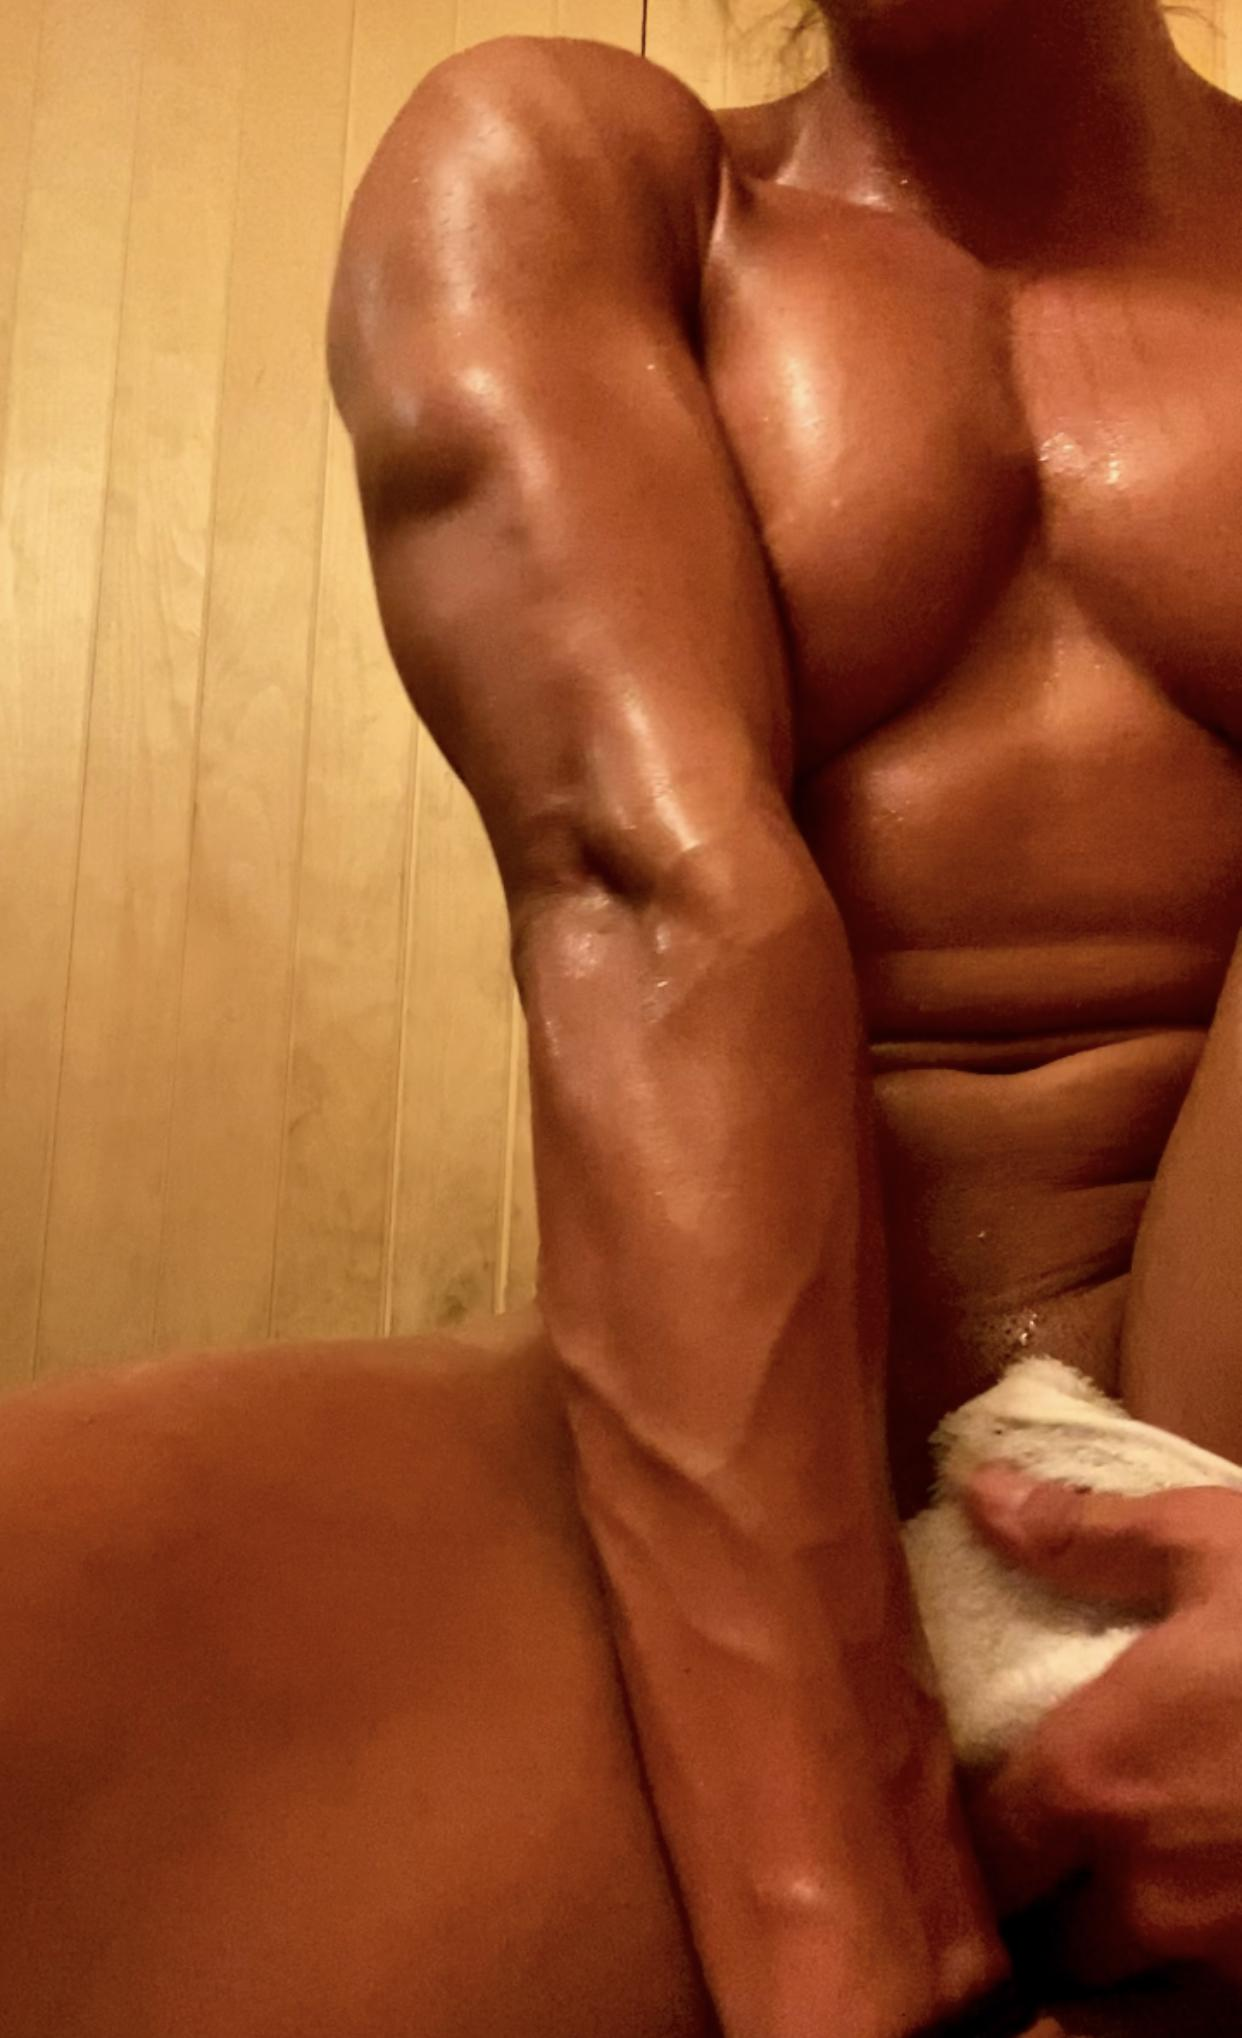 I Just Couldn't Stop Myself, I Was So Horny I Had To Rub My Phat Clit In The Sauna